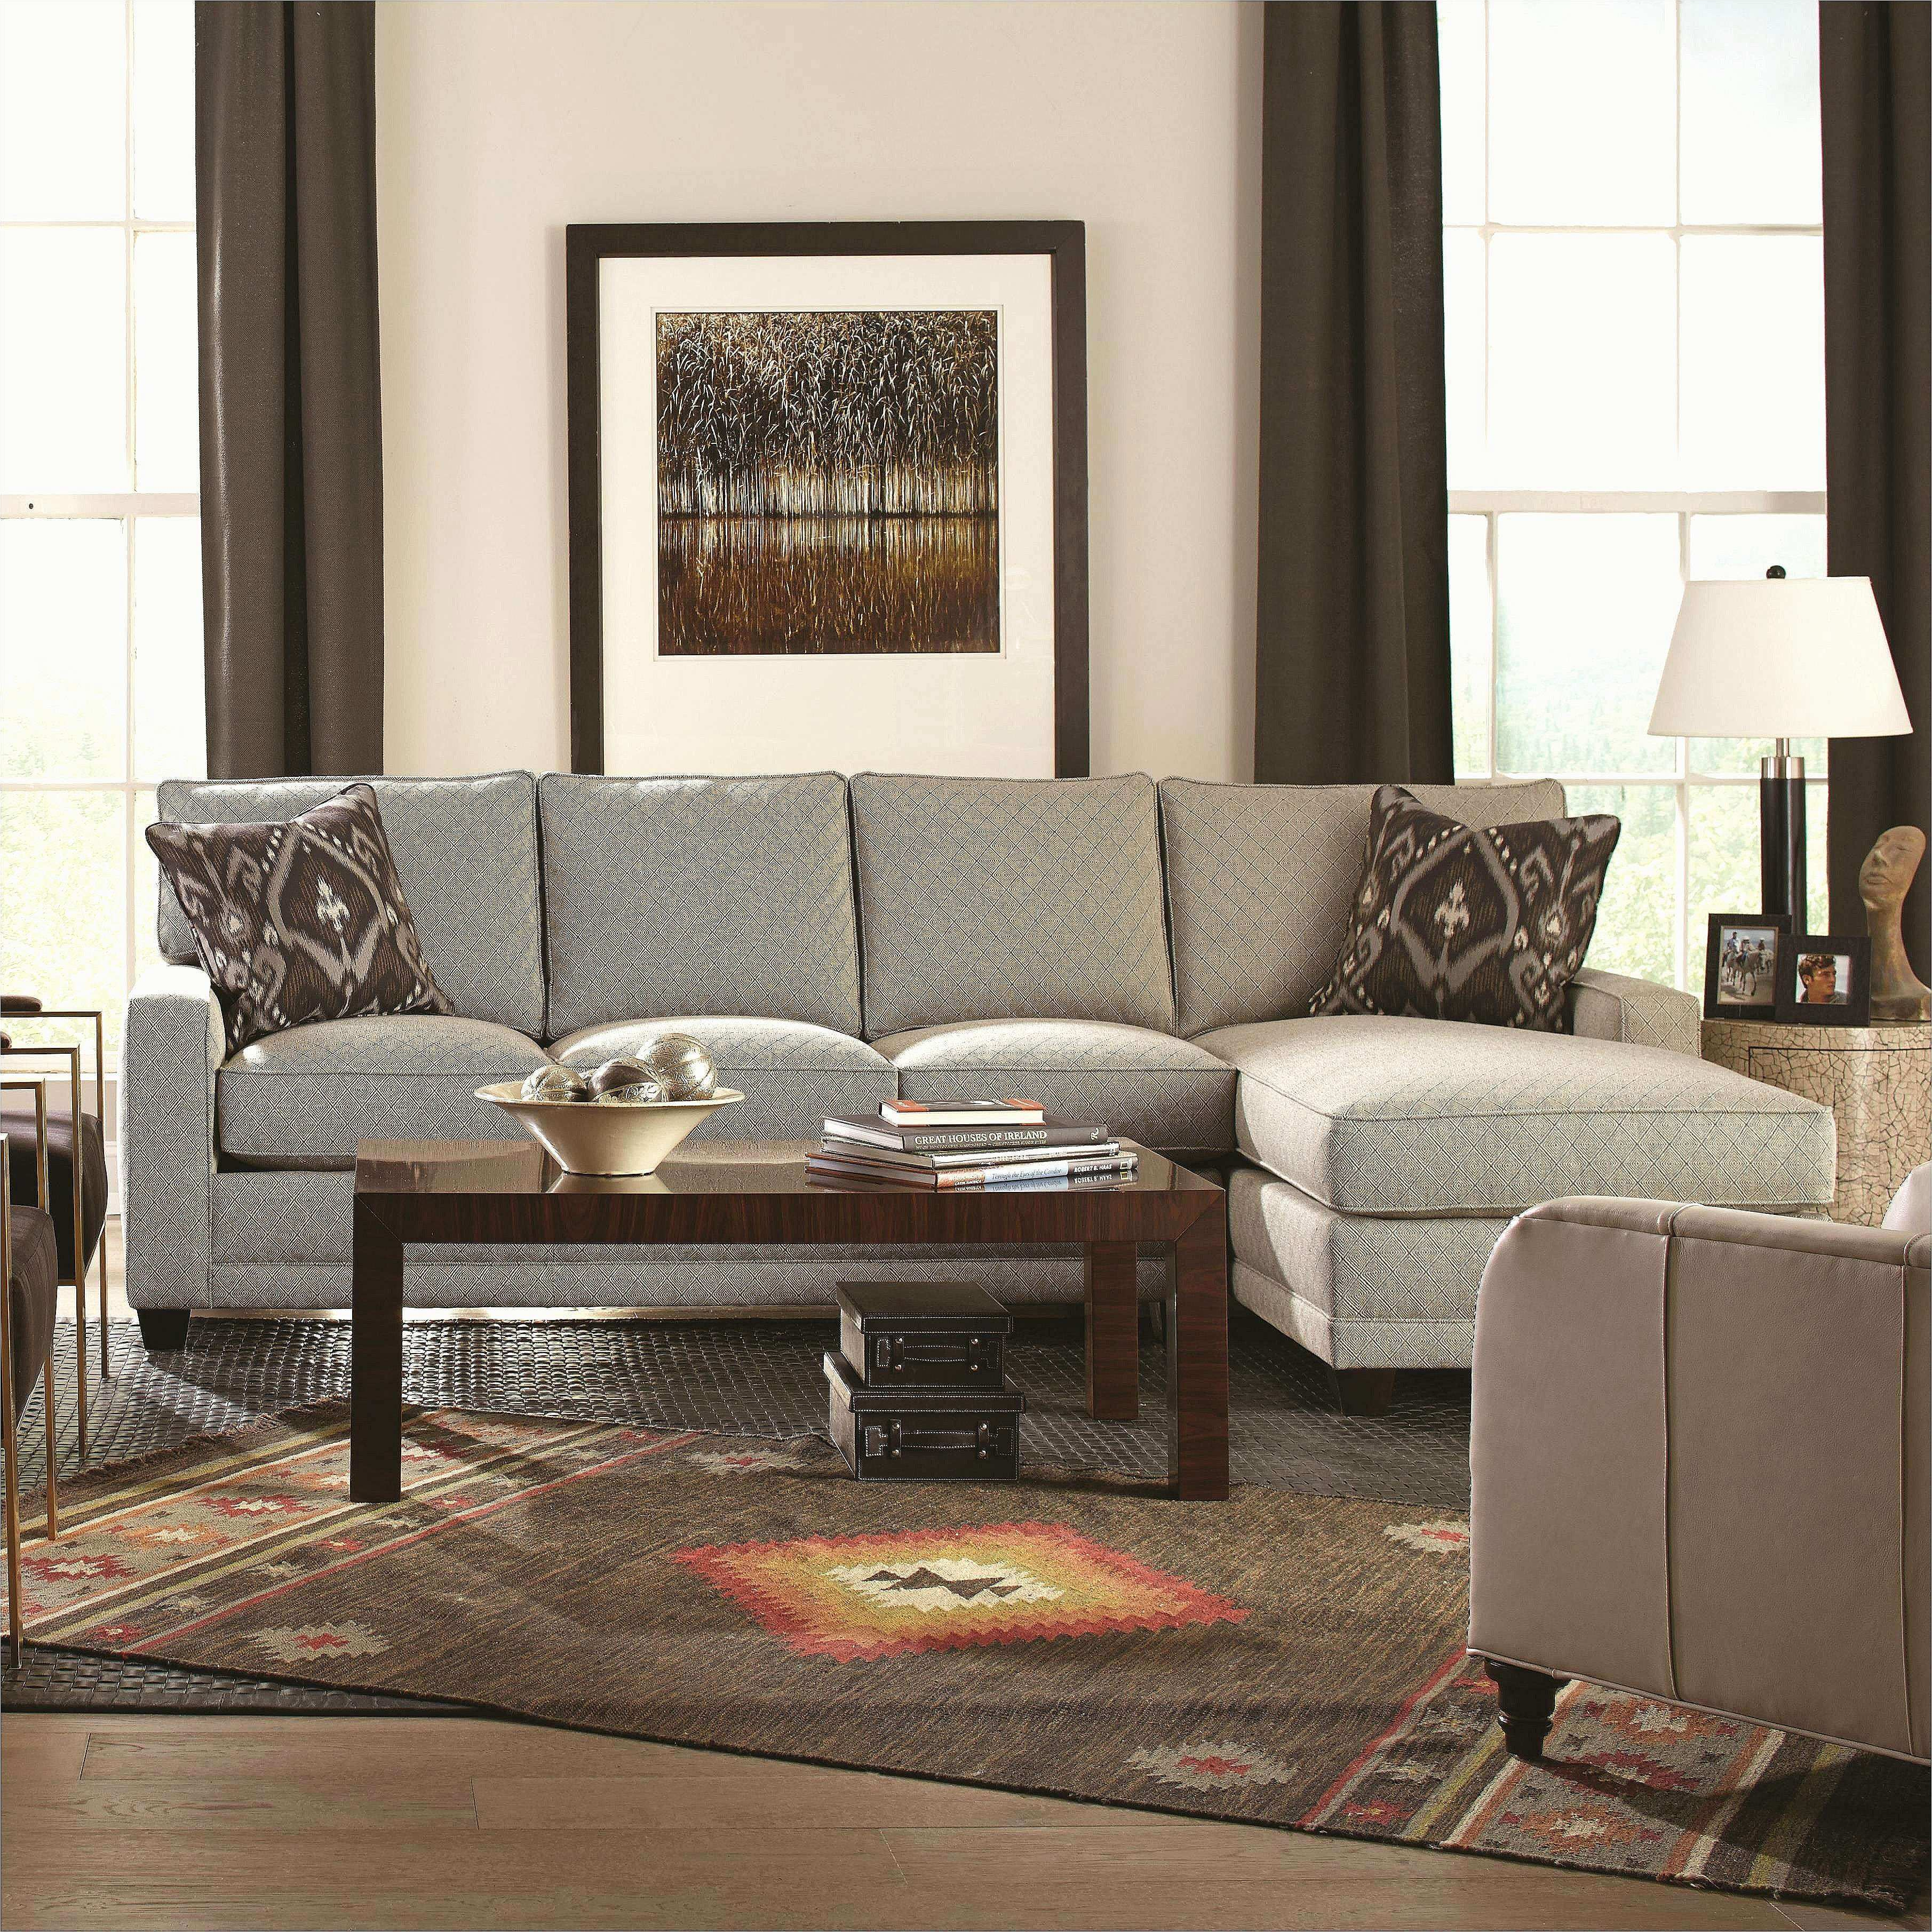 Contemporary Kitchen Decor Lovely Table Set Living Room